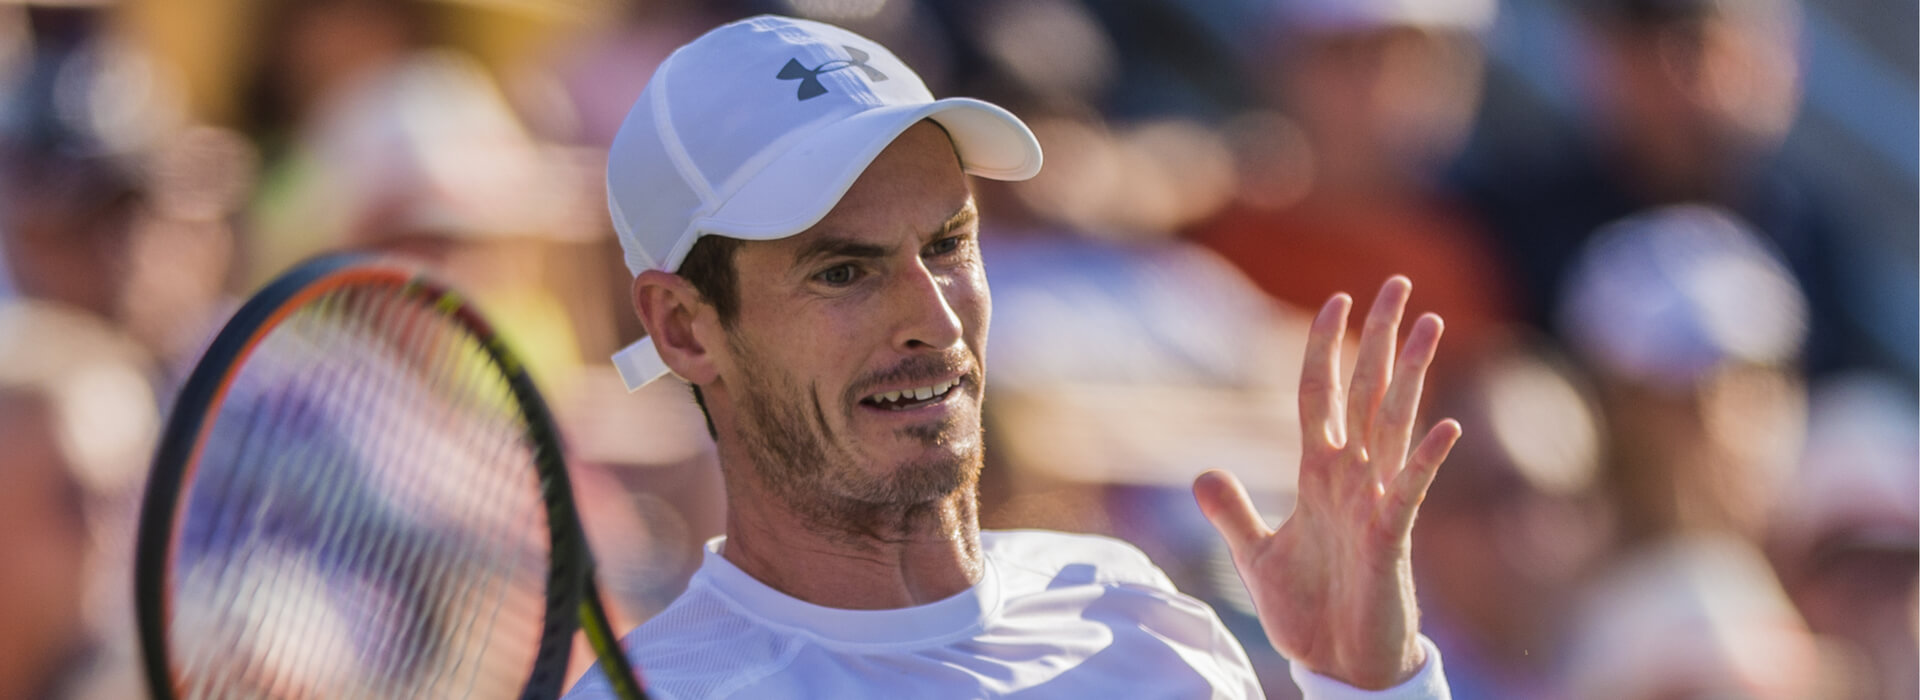 Murray Out, Evans Out As Swiss Army Knife Through Opponents